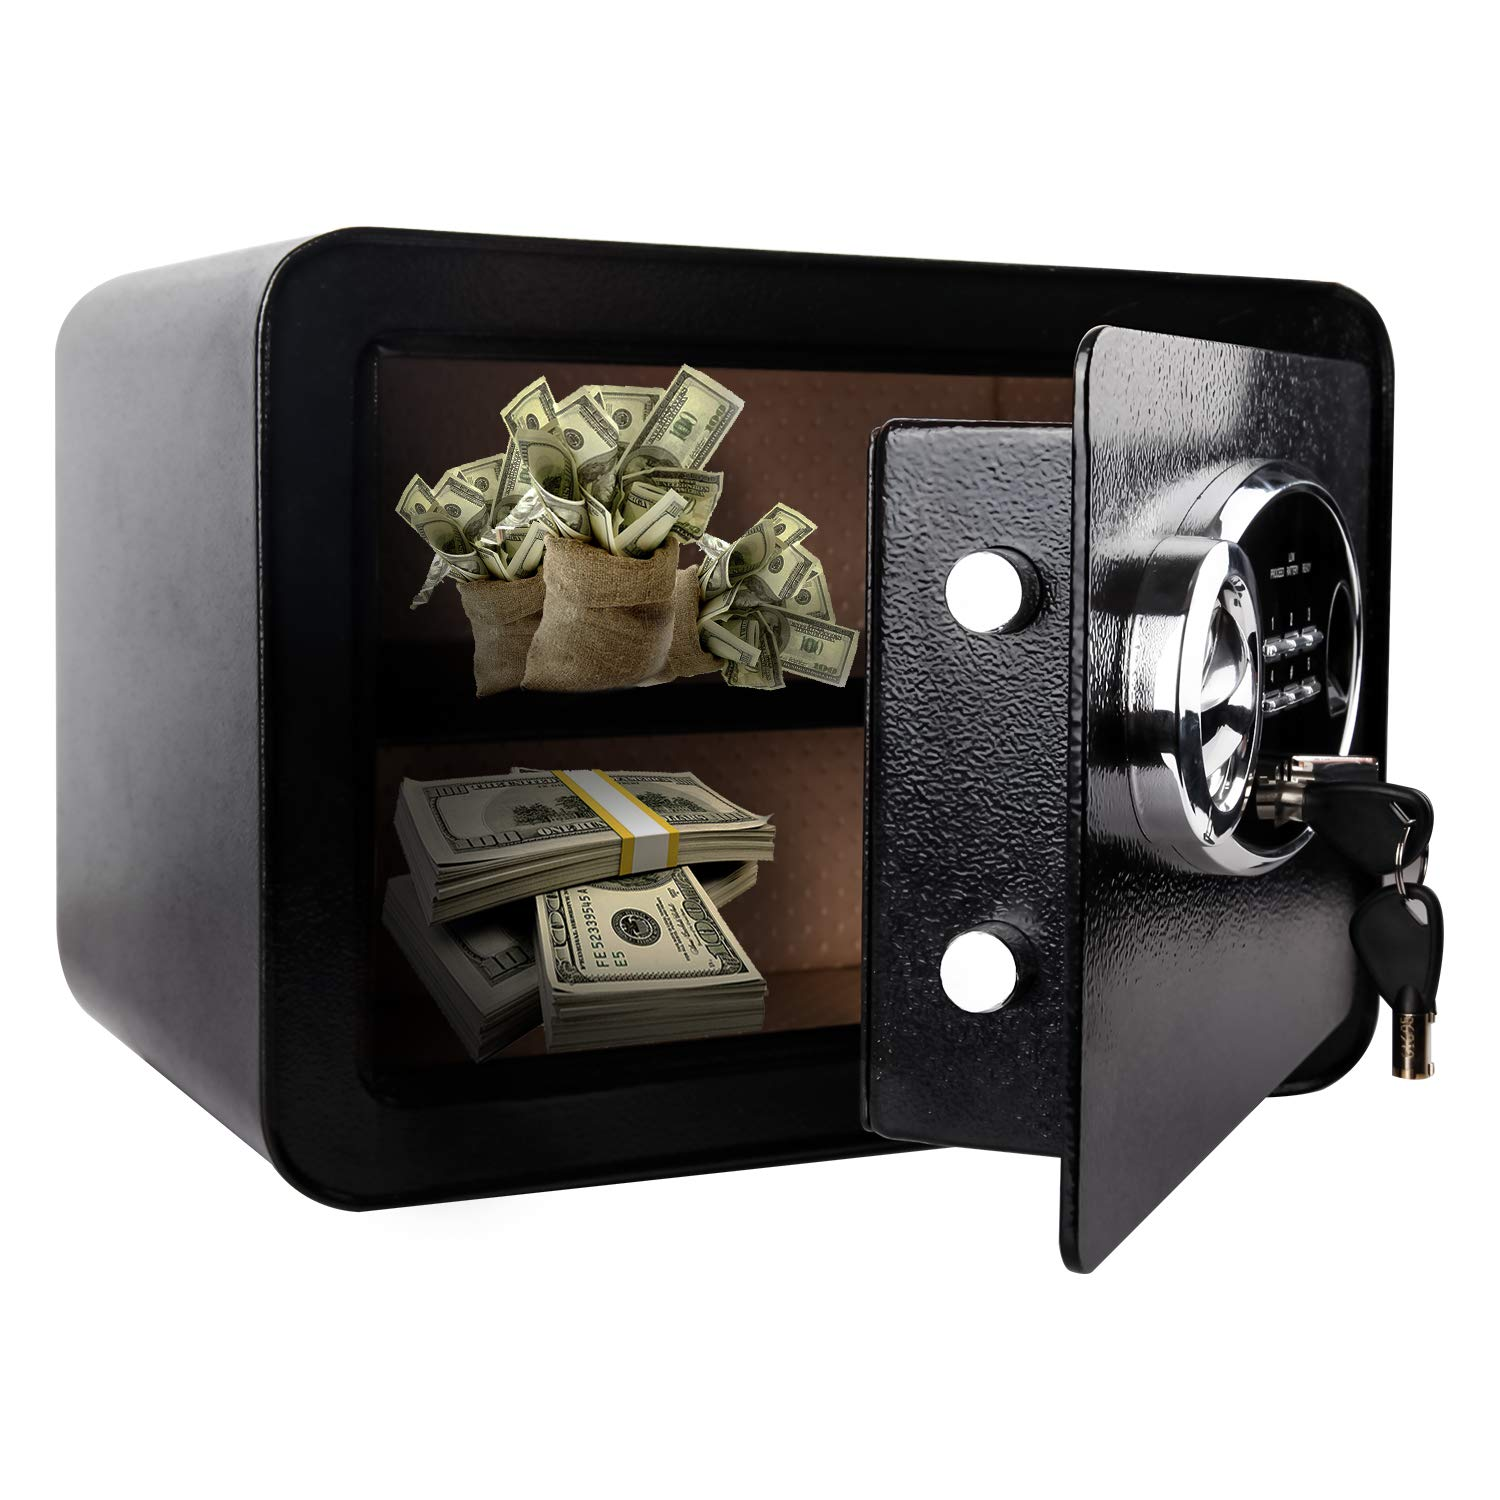 Security Safe Box, Digital and Fingerprint Lock with Key Lock, 13.8 x 9.8 x 9.8 Inches, Home Safe for Storing Jewelry Gun Cash Use Storage, Black